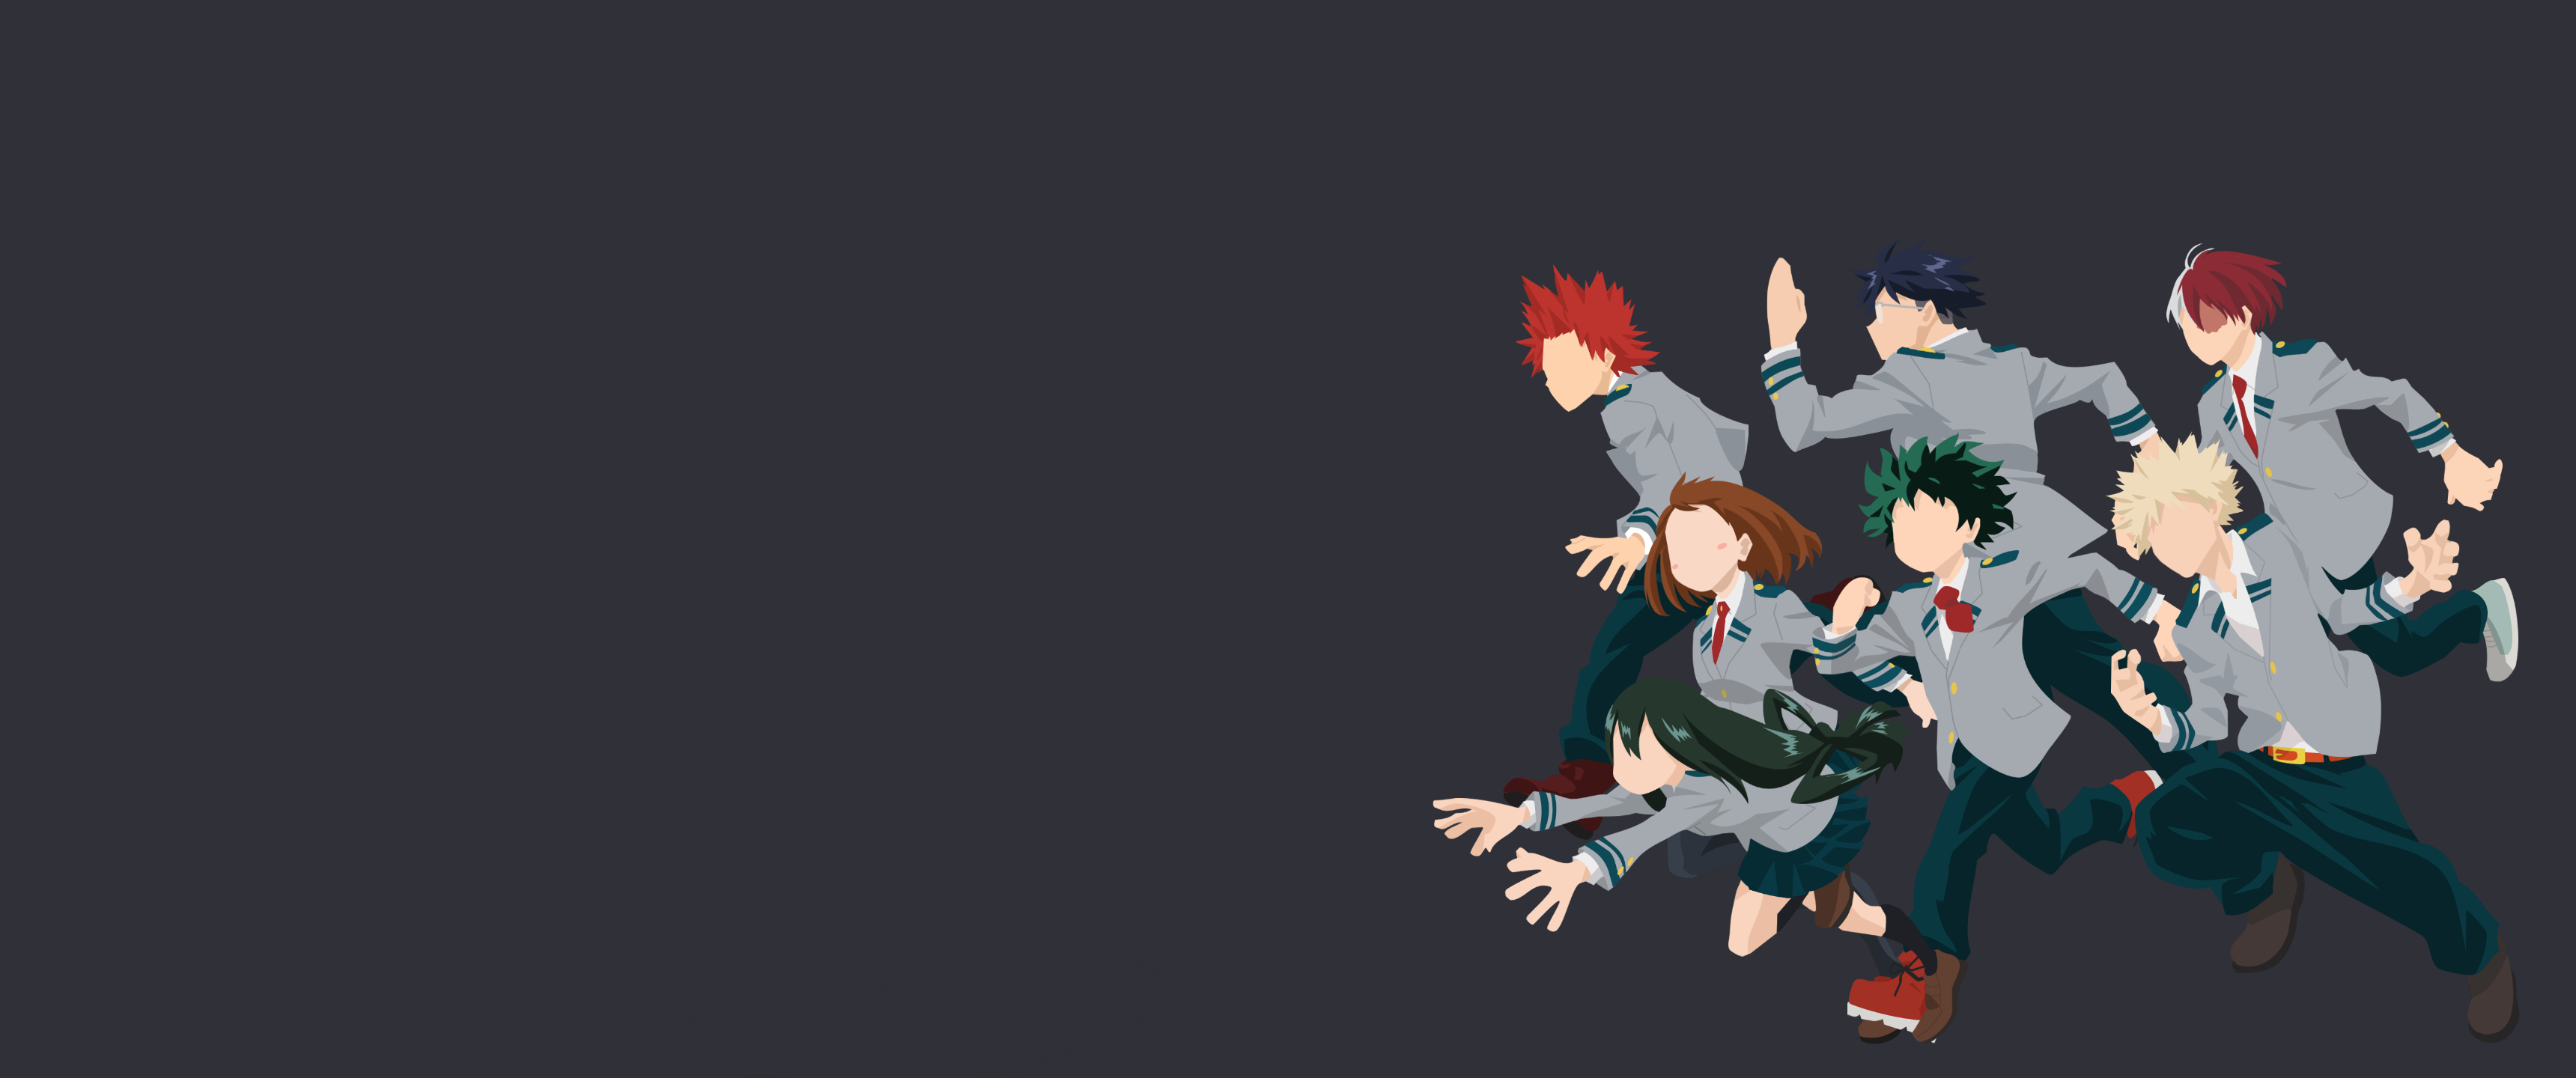 3440x1440 Animated Wallpaper Posted By Michelle Cunningham